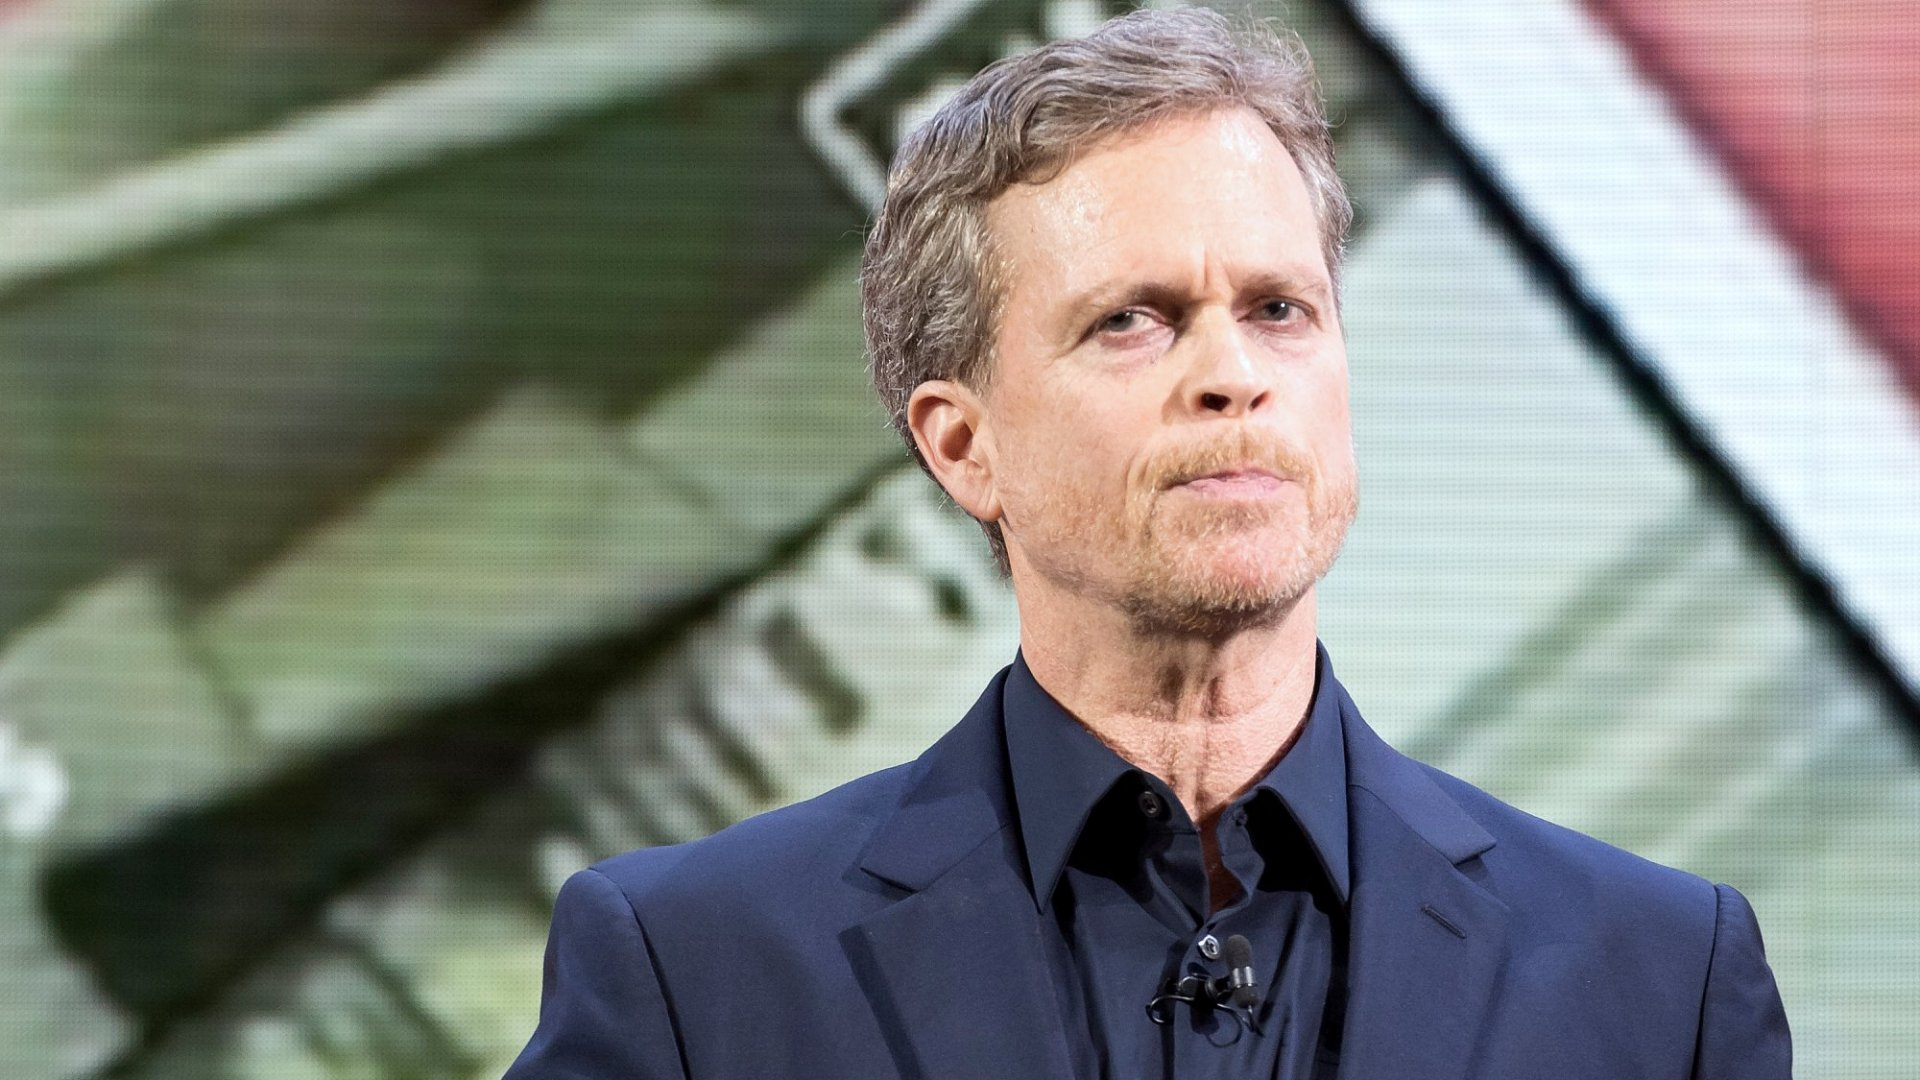 Nike CEO Mark Parker Just Taught 4 Lessons on How to Handle Complaints About Toxic Culture